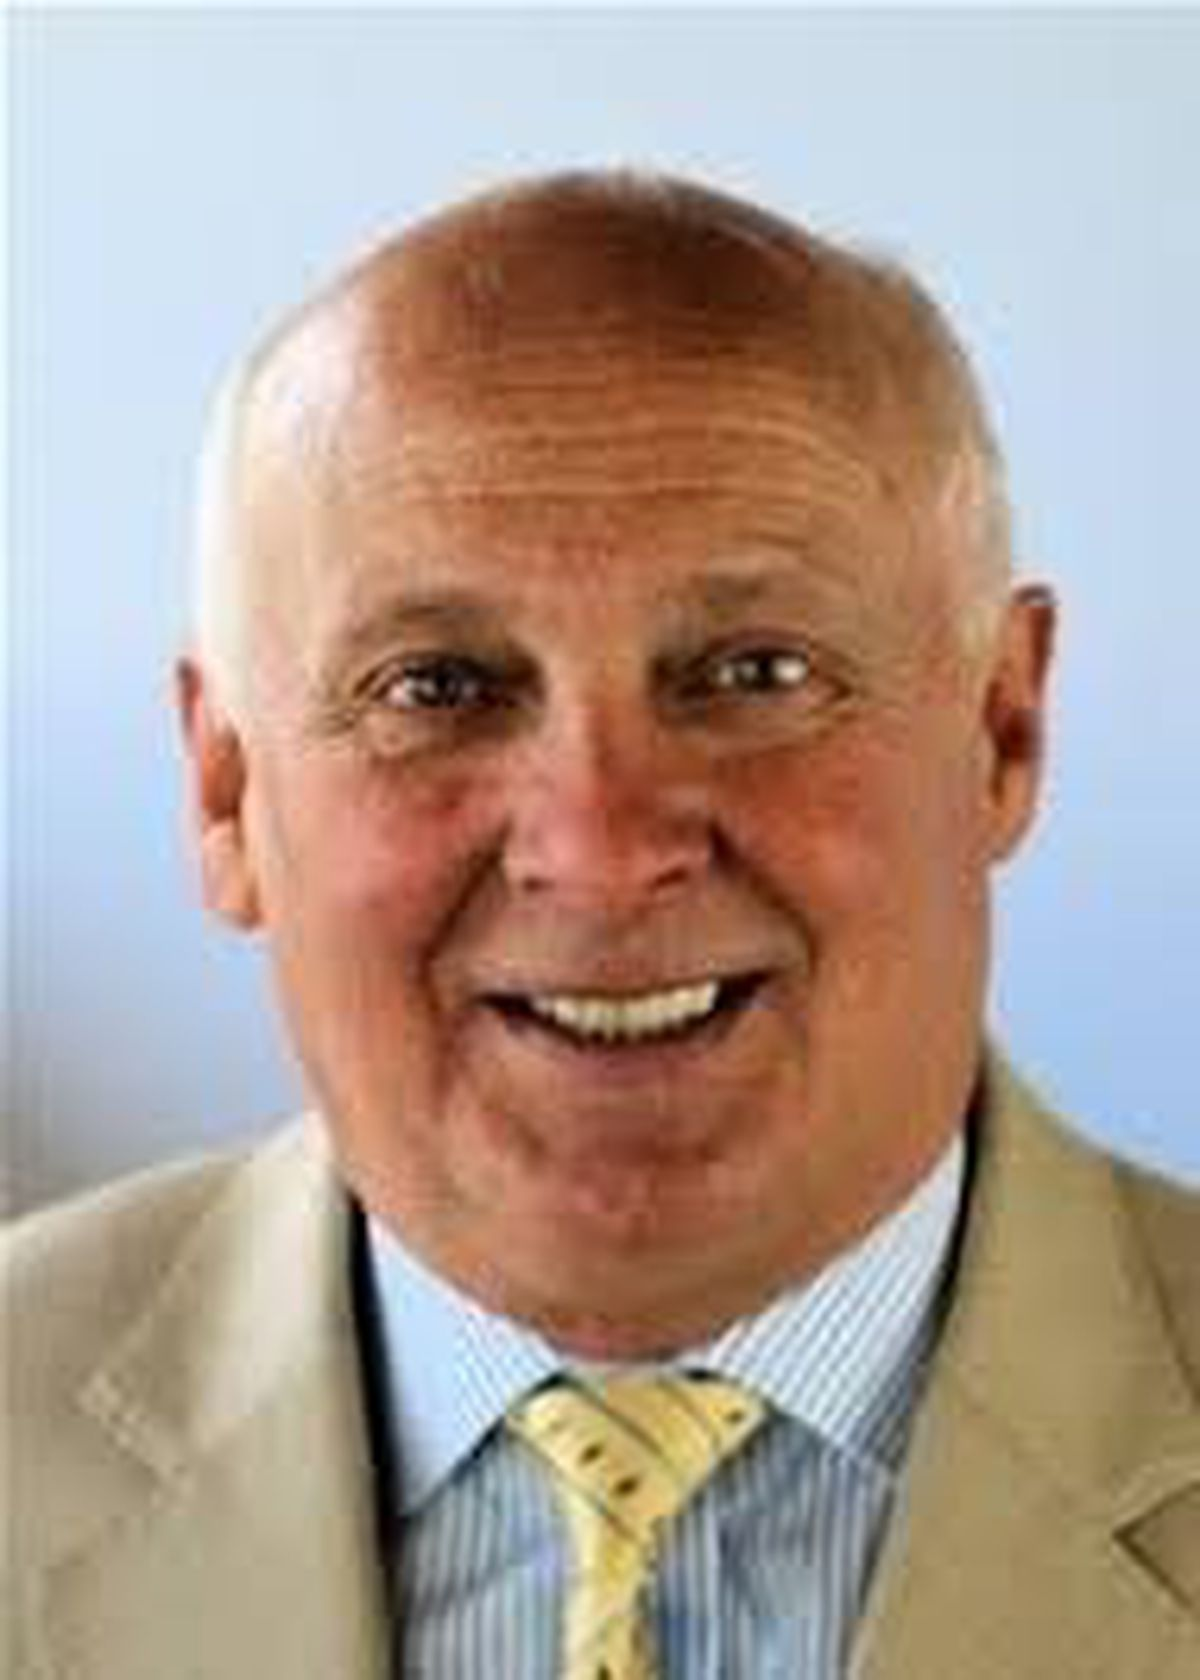 Chairman of Powys County Council\'s Audit Committee, Councillor John Morris.